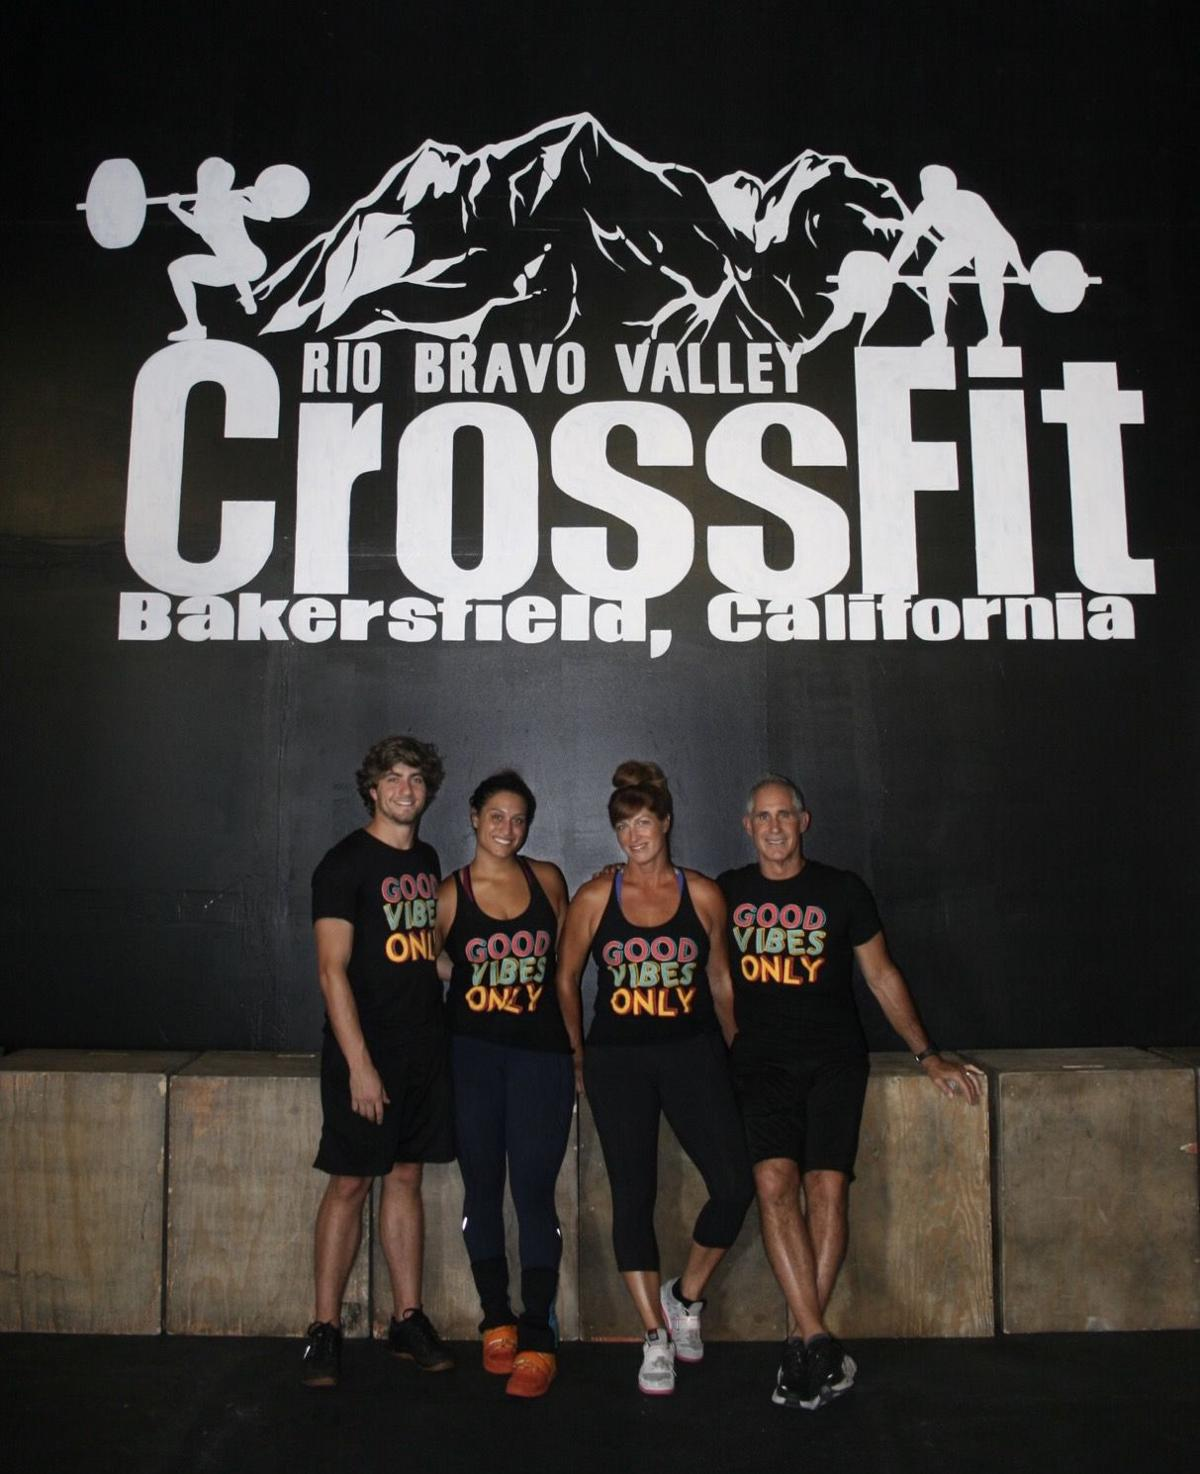 Rio Bravo Valley CrossFit